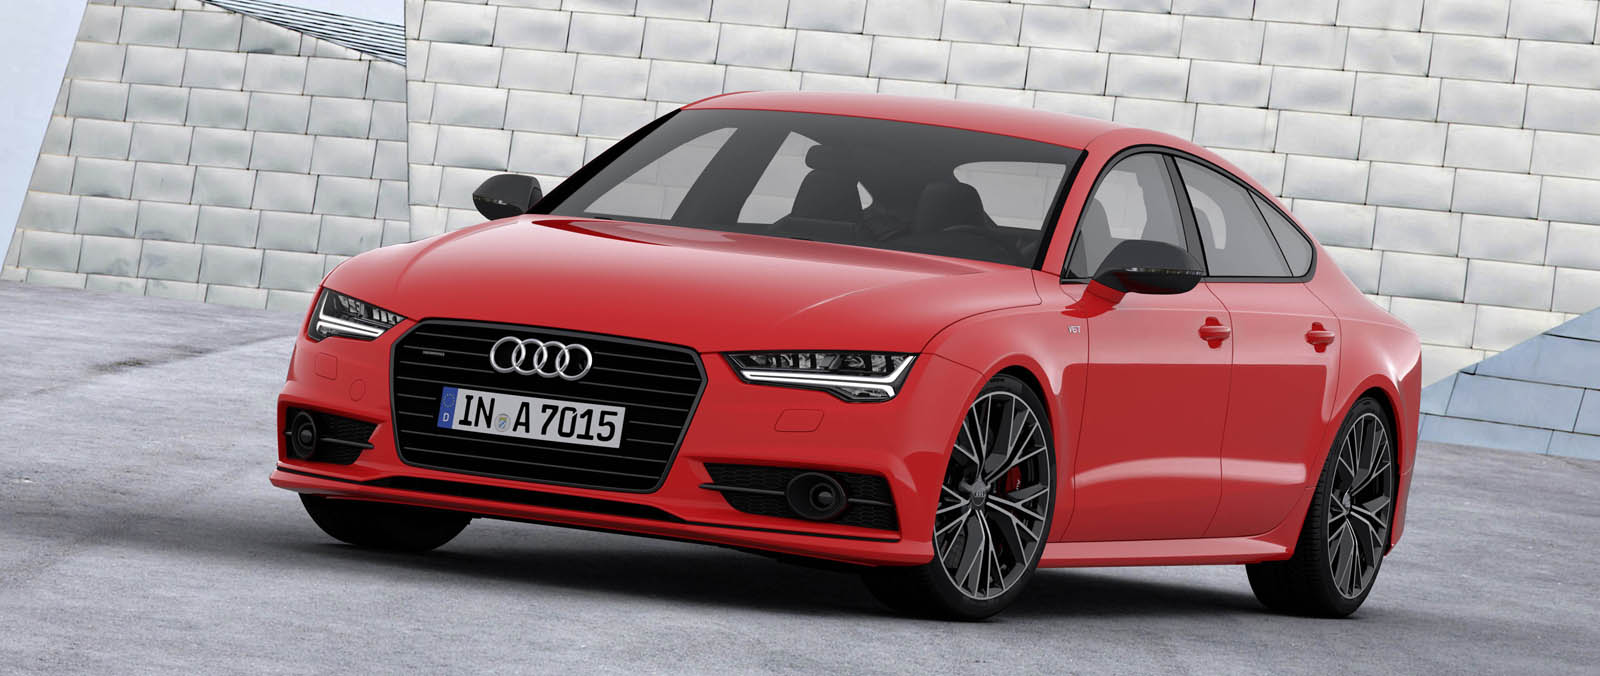 Audi A6 en A7 Sportback in competition-uitvoering